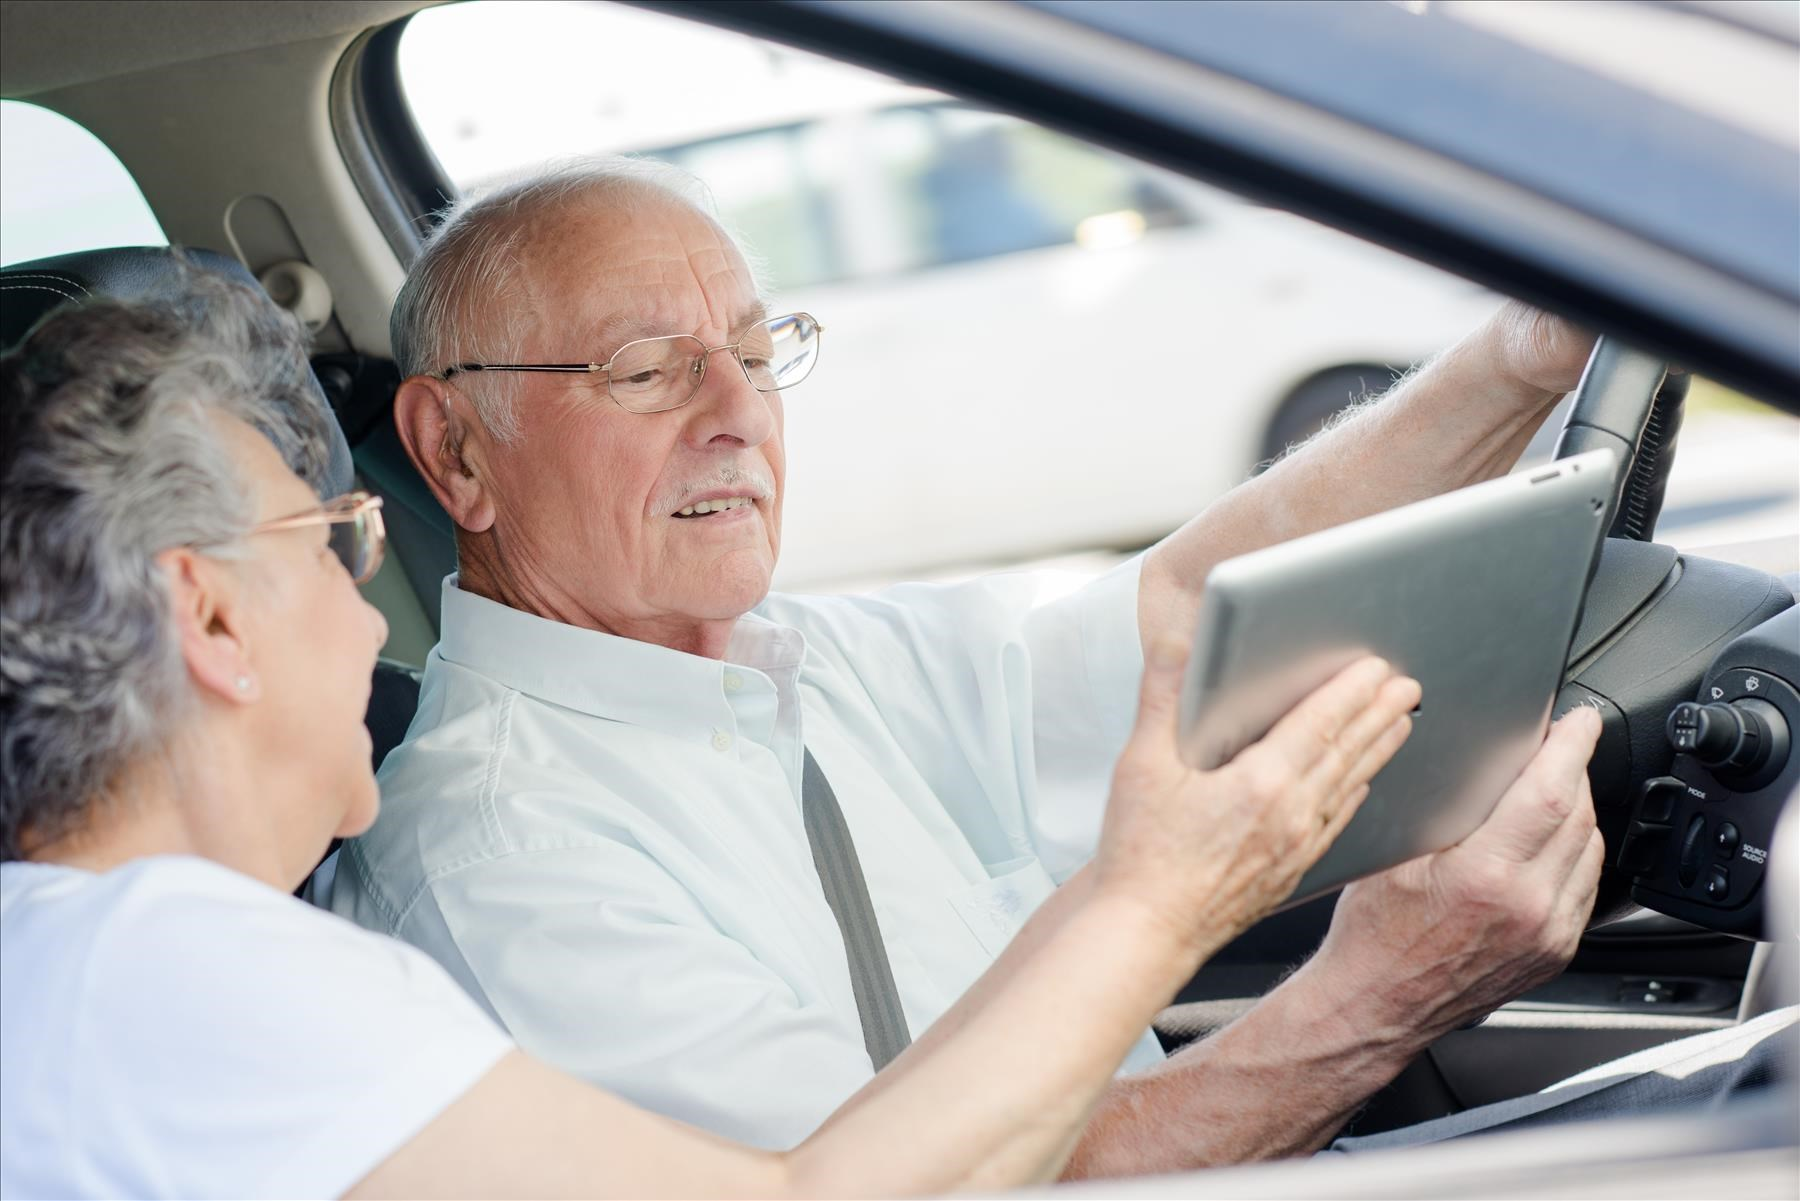 Hiring a Car Injury Lawyer after a Driving Accident Occurs Involving an Elderly Driver